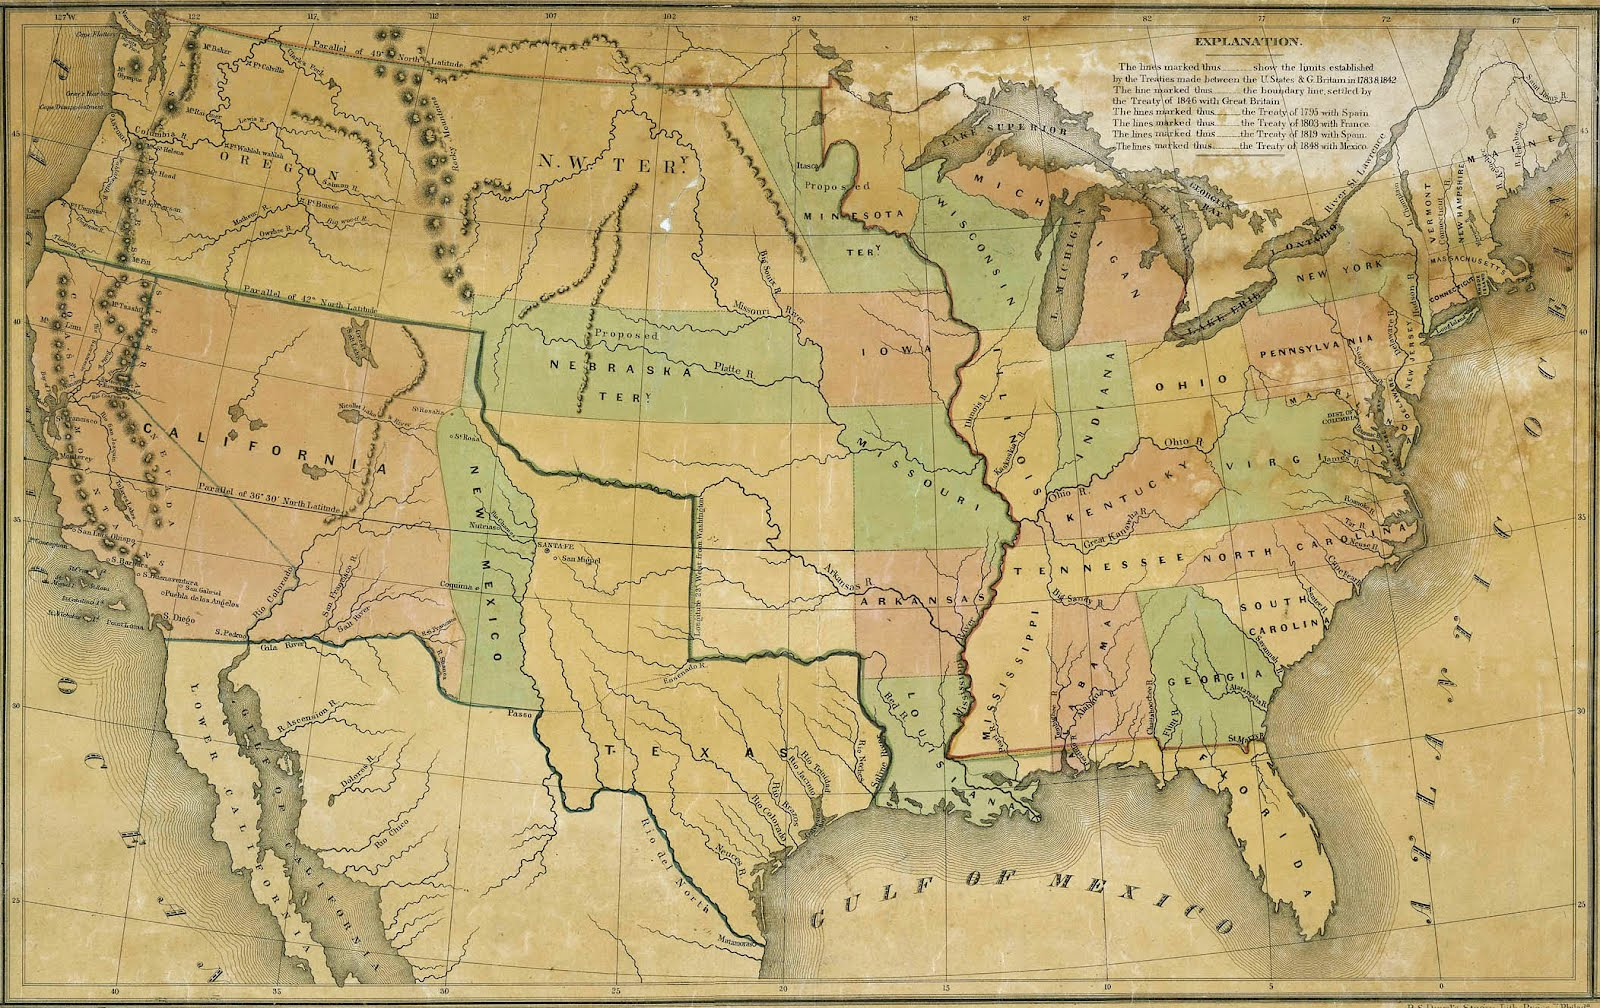 Antique Prints Blog April - Us map 1840